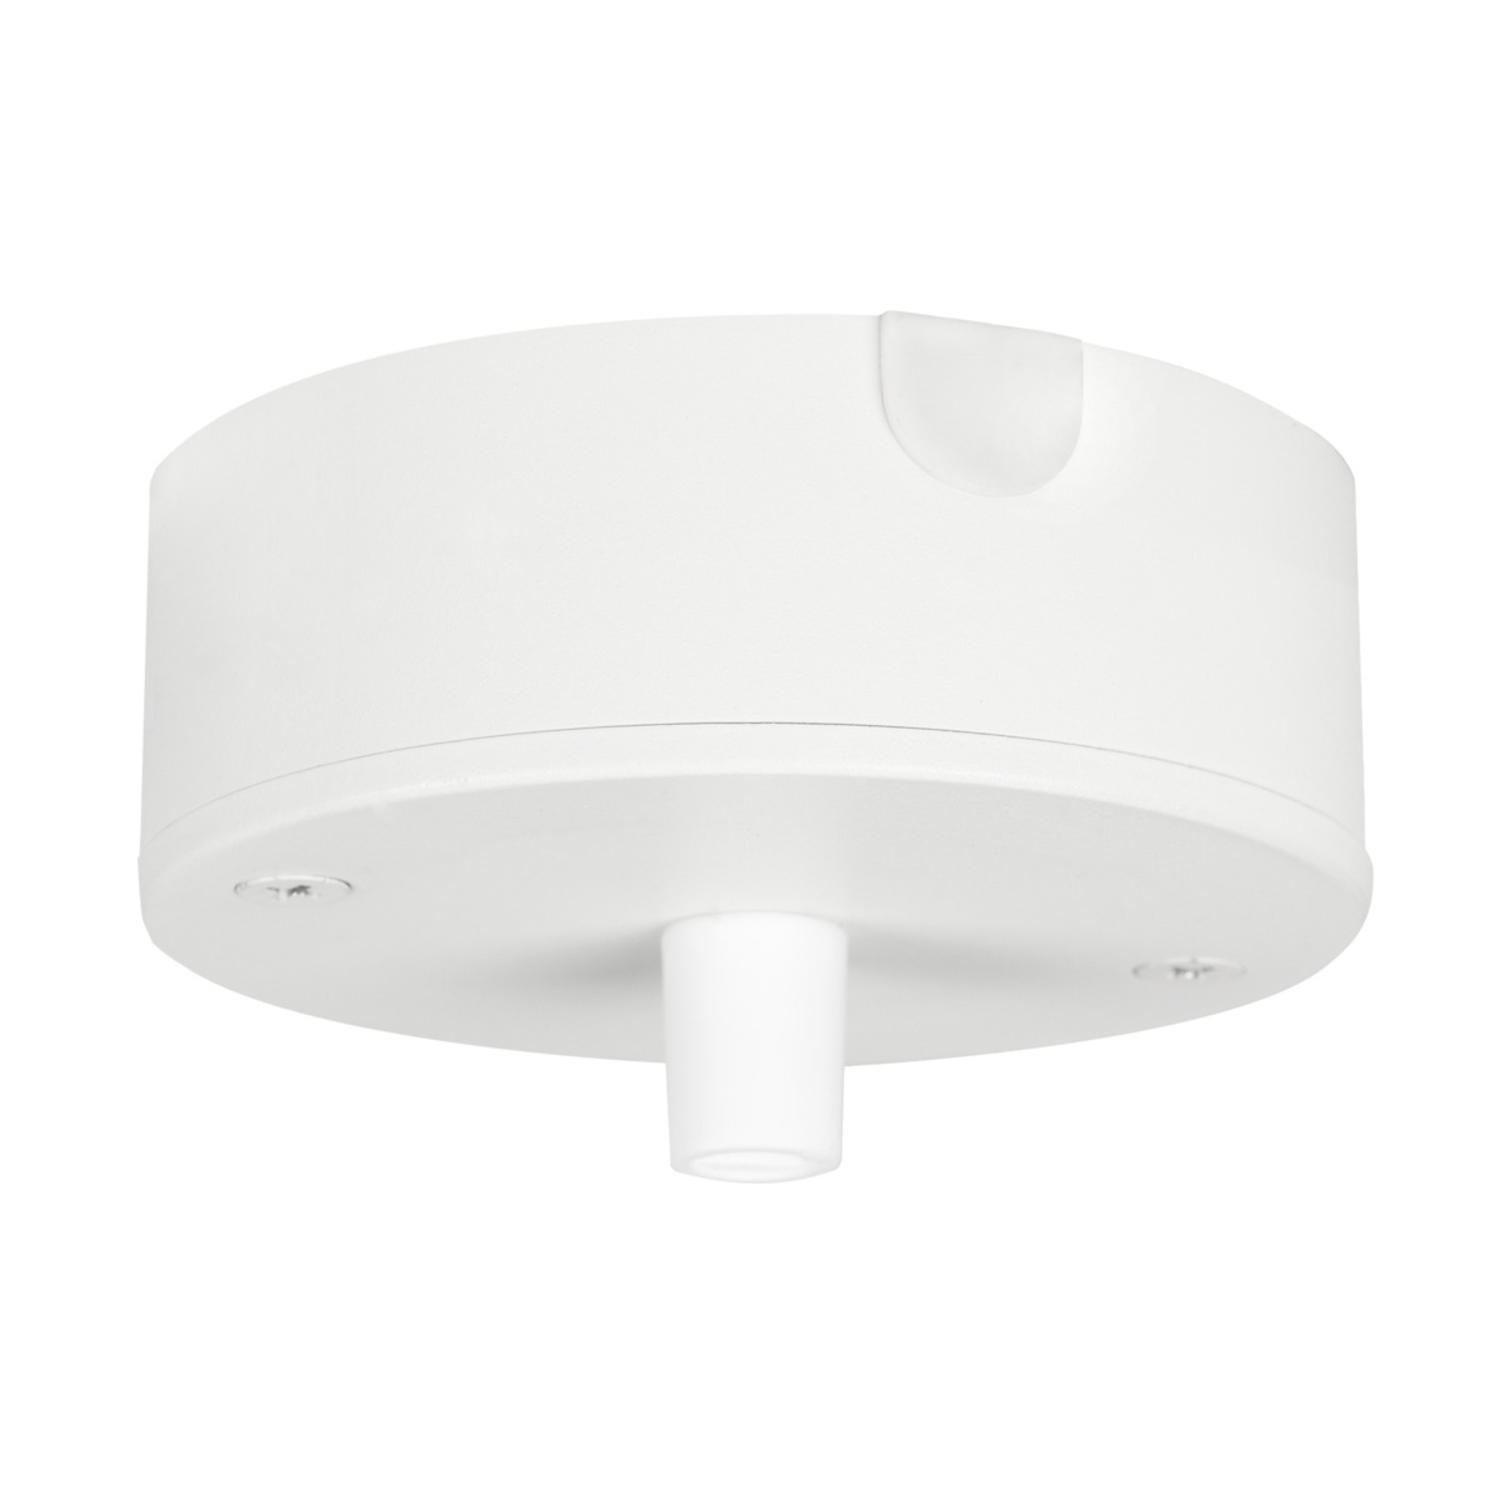 Ceiling cup for box/surface mounting White